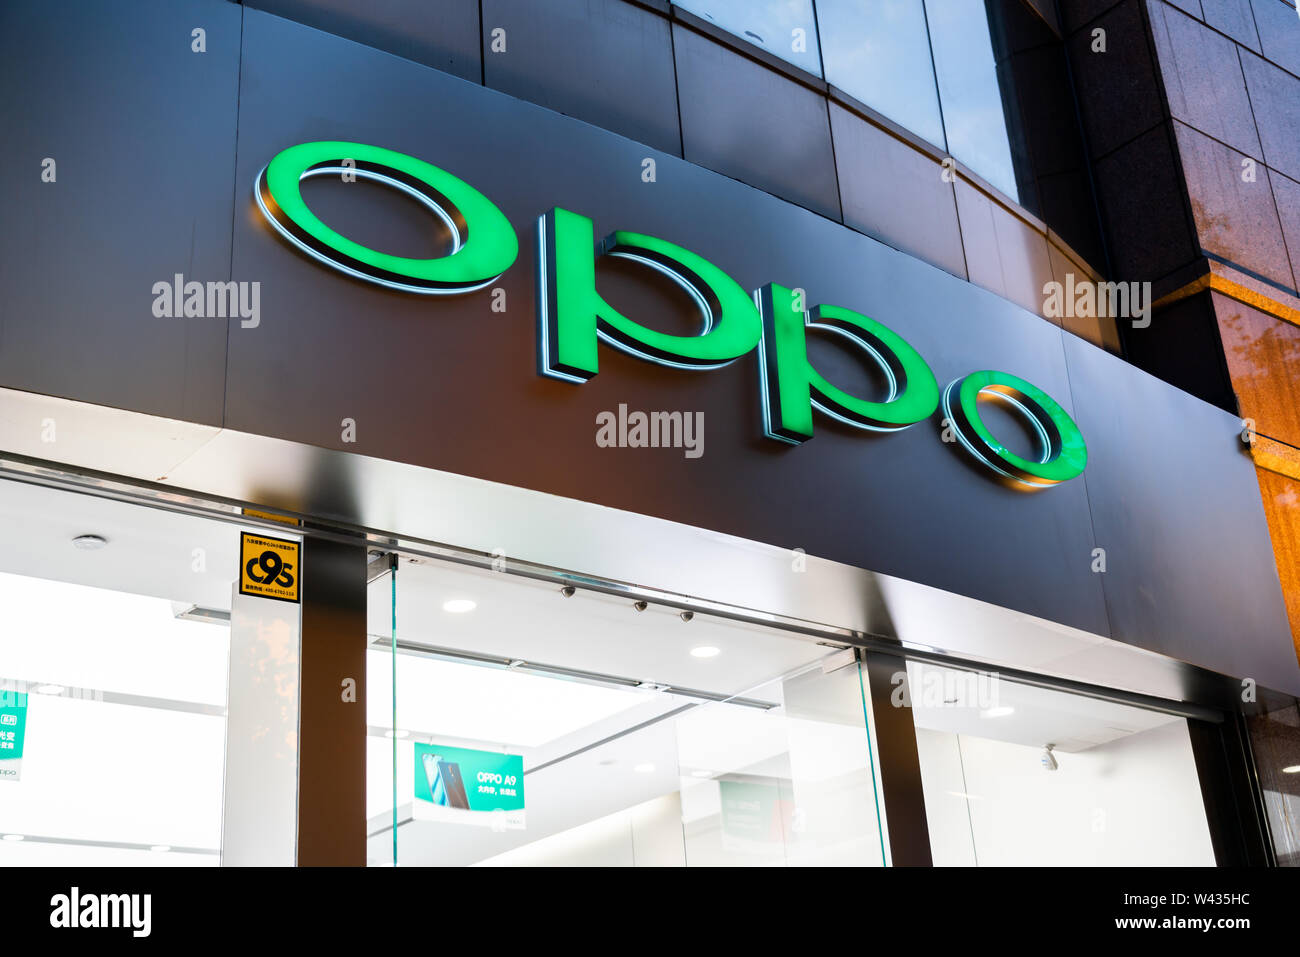 Oppo Stock Photos & Oppo Stock Images - Alamy